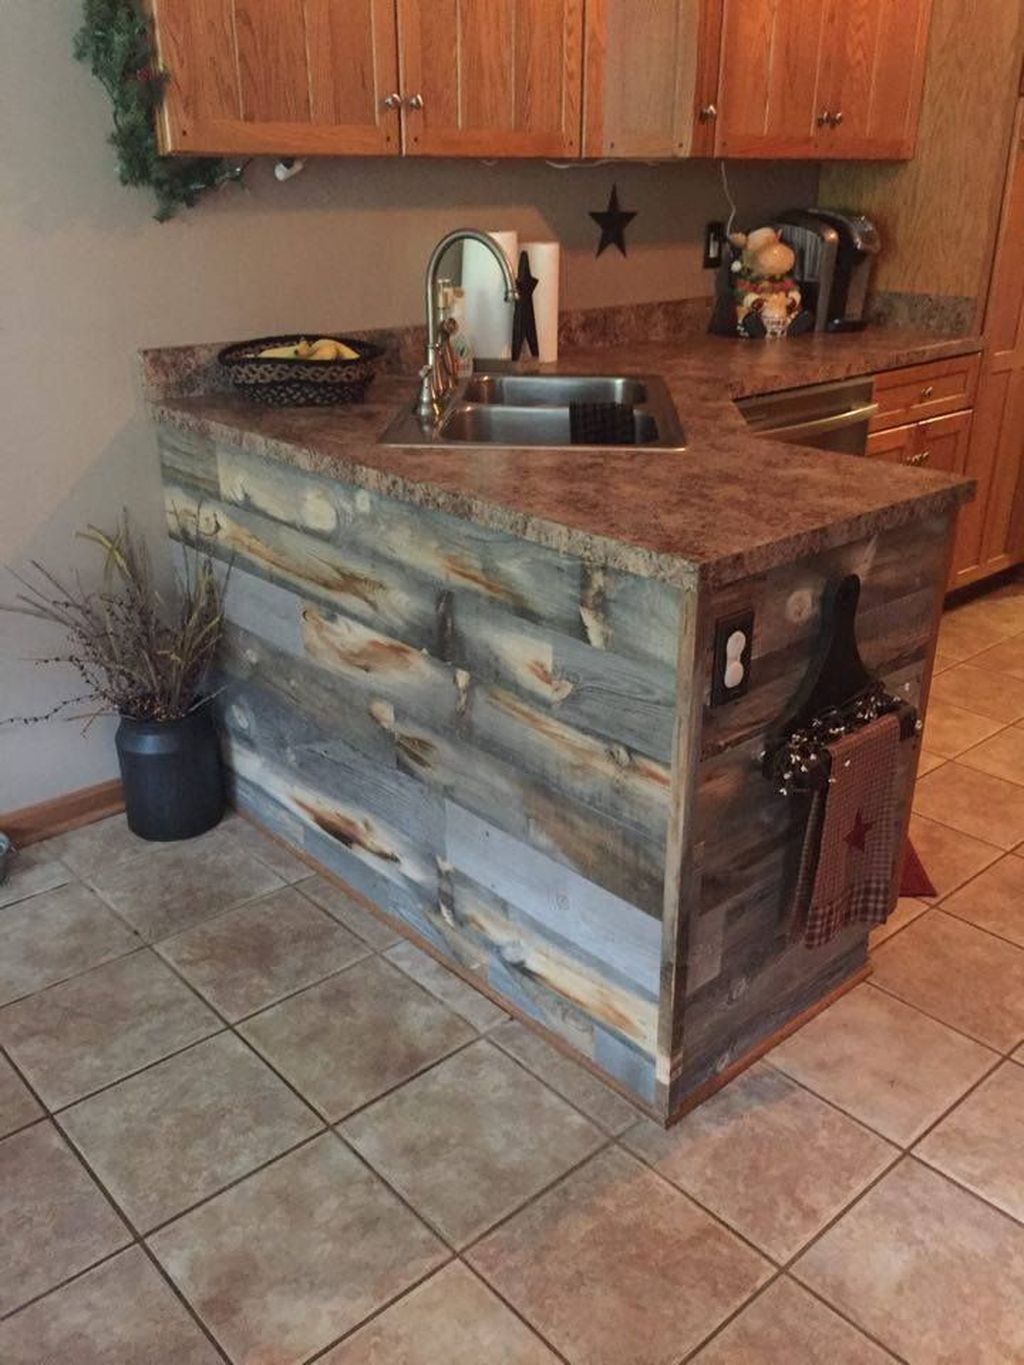 42 Fabulous Rustic Kitchen Island Ideas Best For Farmhouse Theme Rustic Kitchen Design Rustic Kitchen Island Rustic Kitchen Cabinets